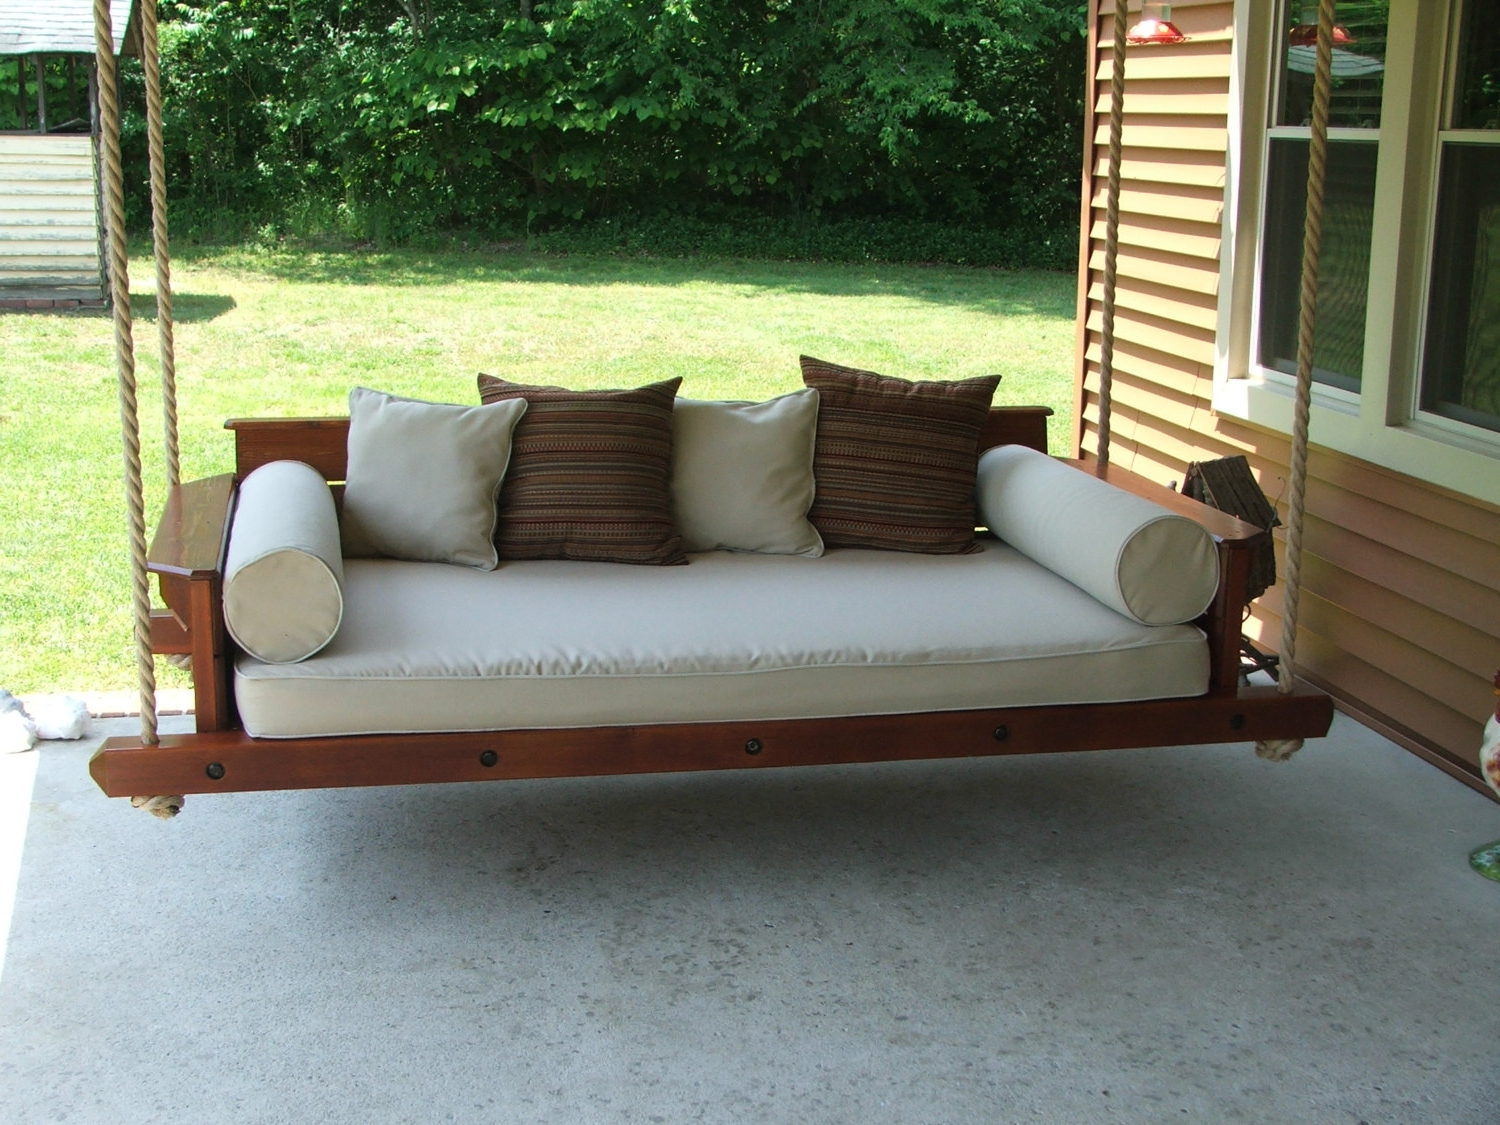 Teak Porch Swing With Rope Within Trendy Teak Porch Swings (View 6 of 30)